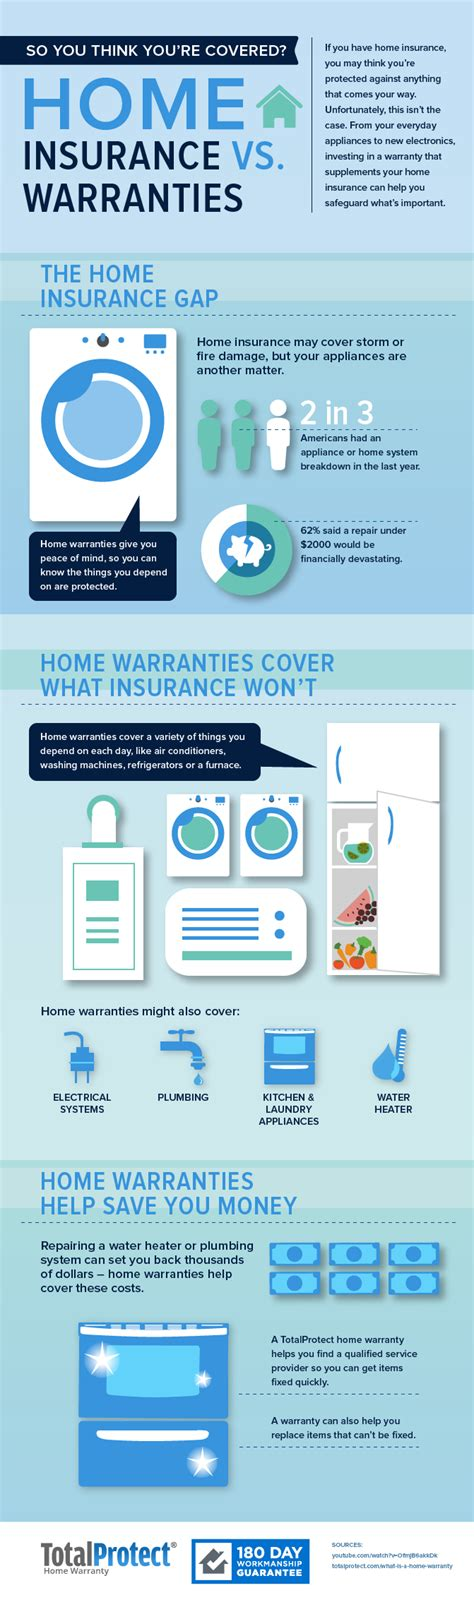 totalprotect home warranty home review